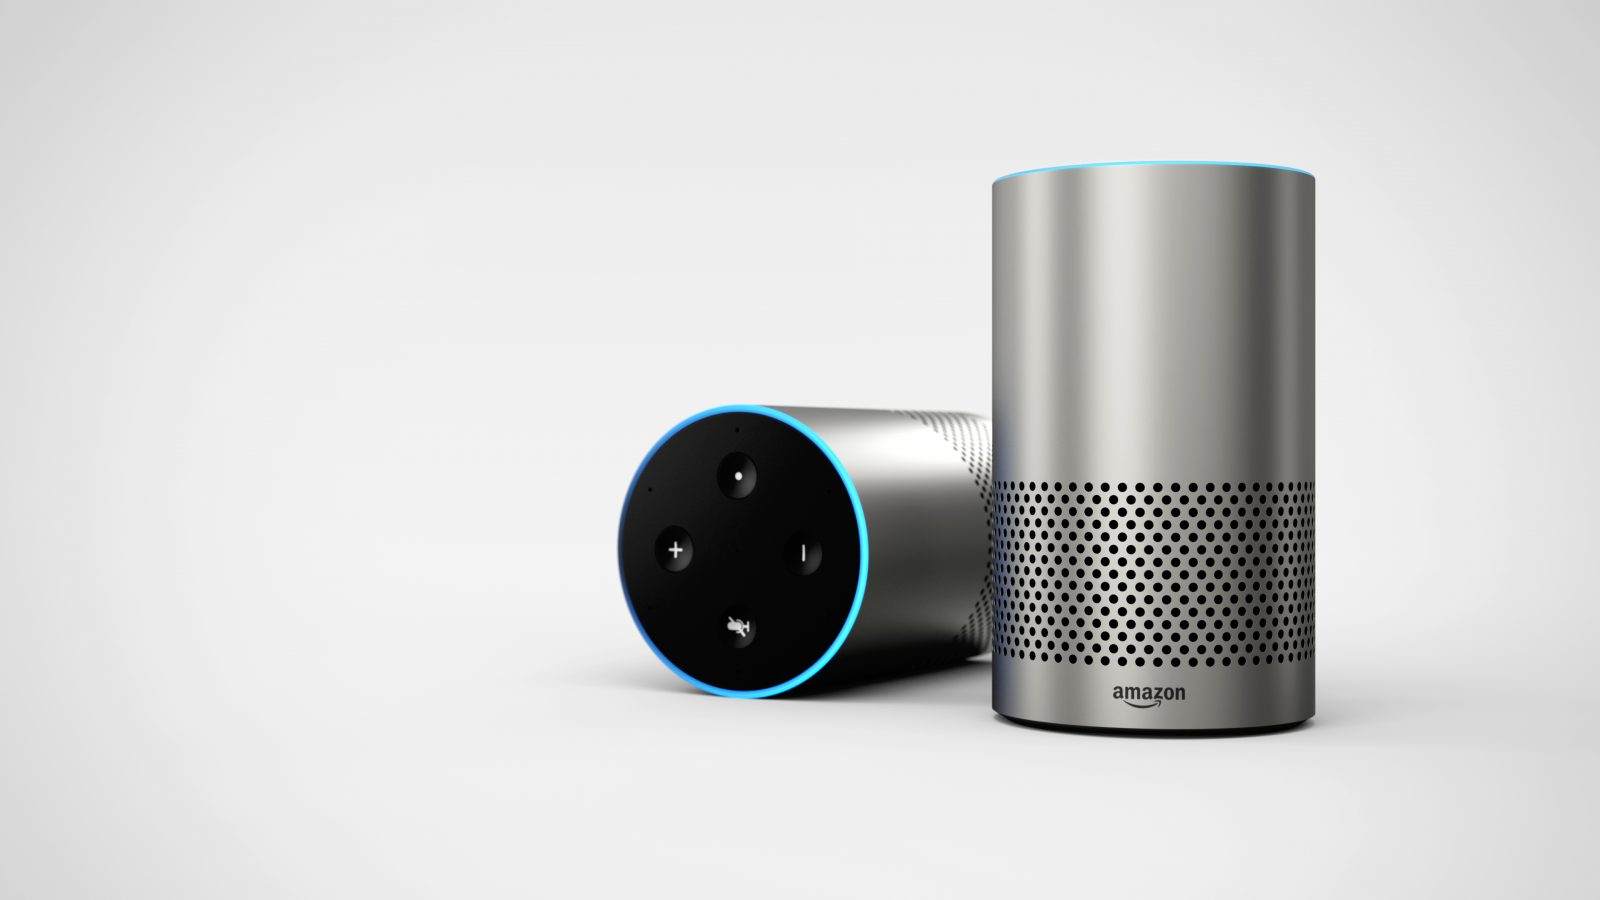 How Do I Use an Amazon Echo? (2018 Guide)